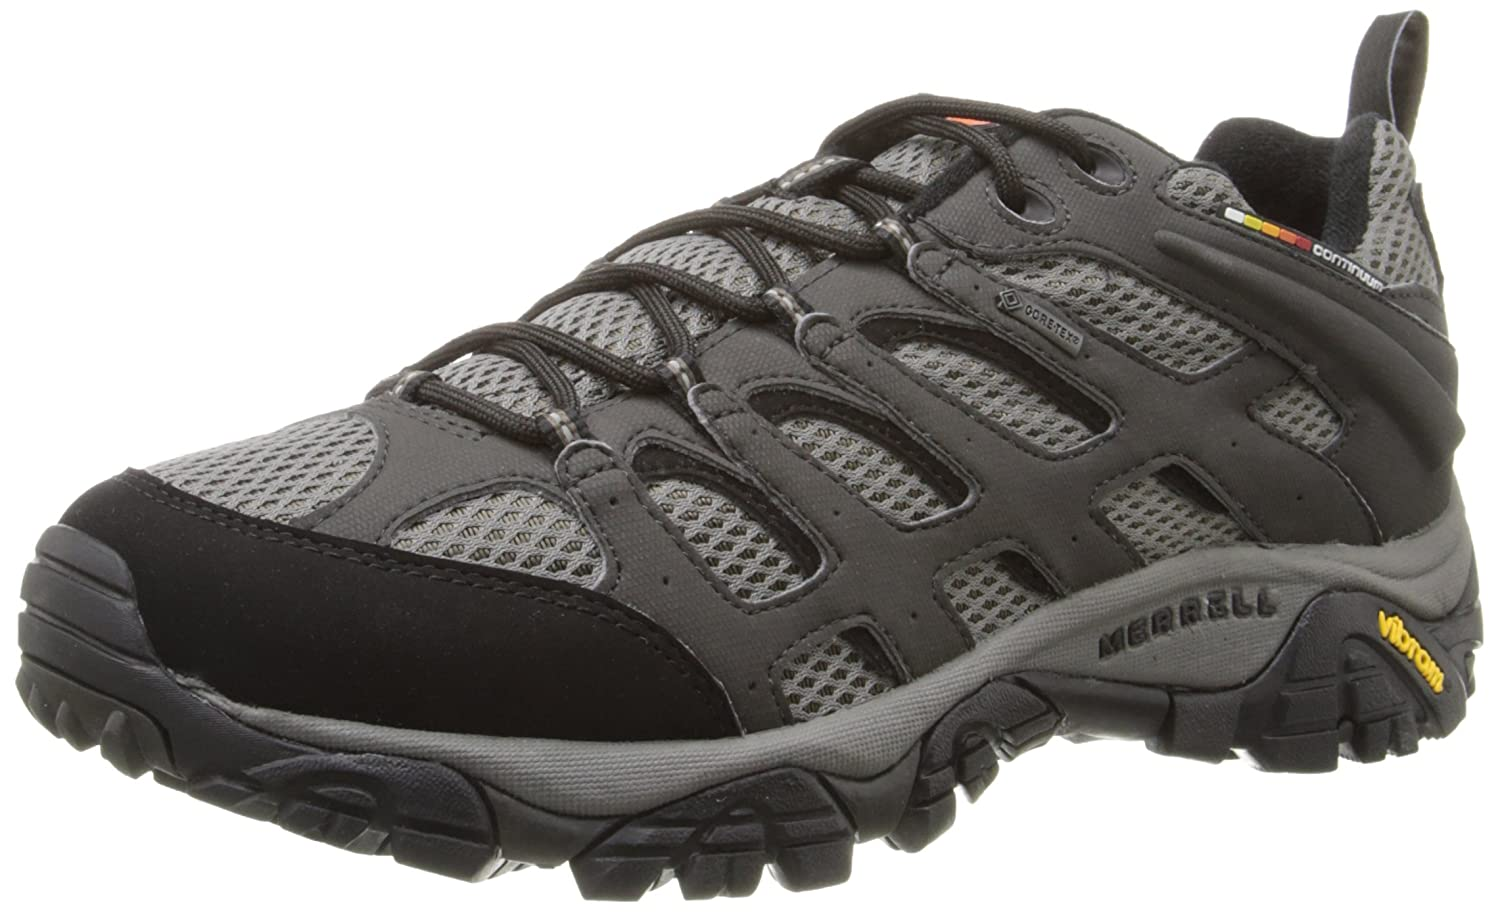 9ed66463e6d047 Crocs Men s Moab Gore-tex Low Rise Hiking Shoes  Buy Online at Low Prices  in India - Amazon.in